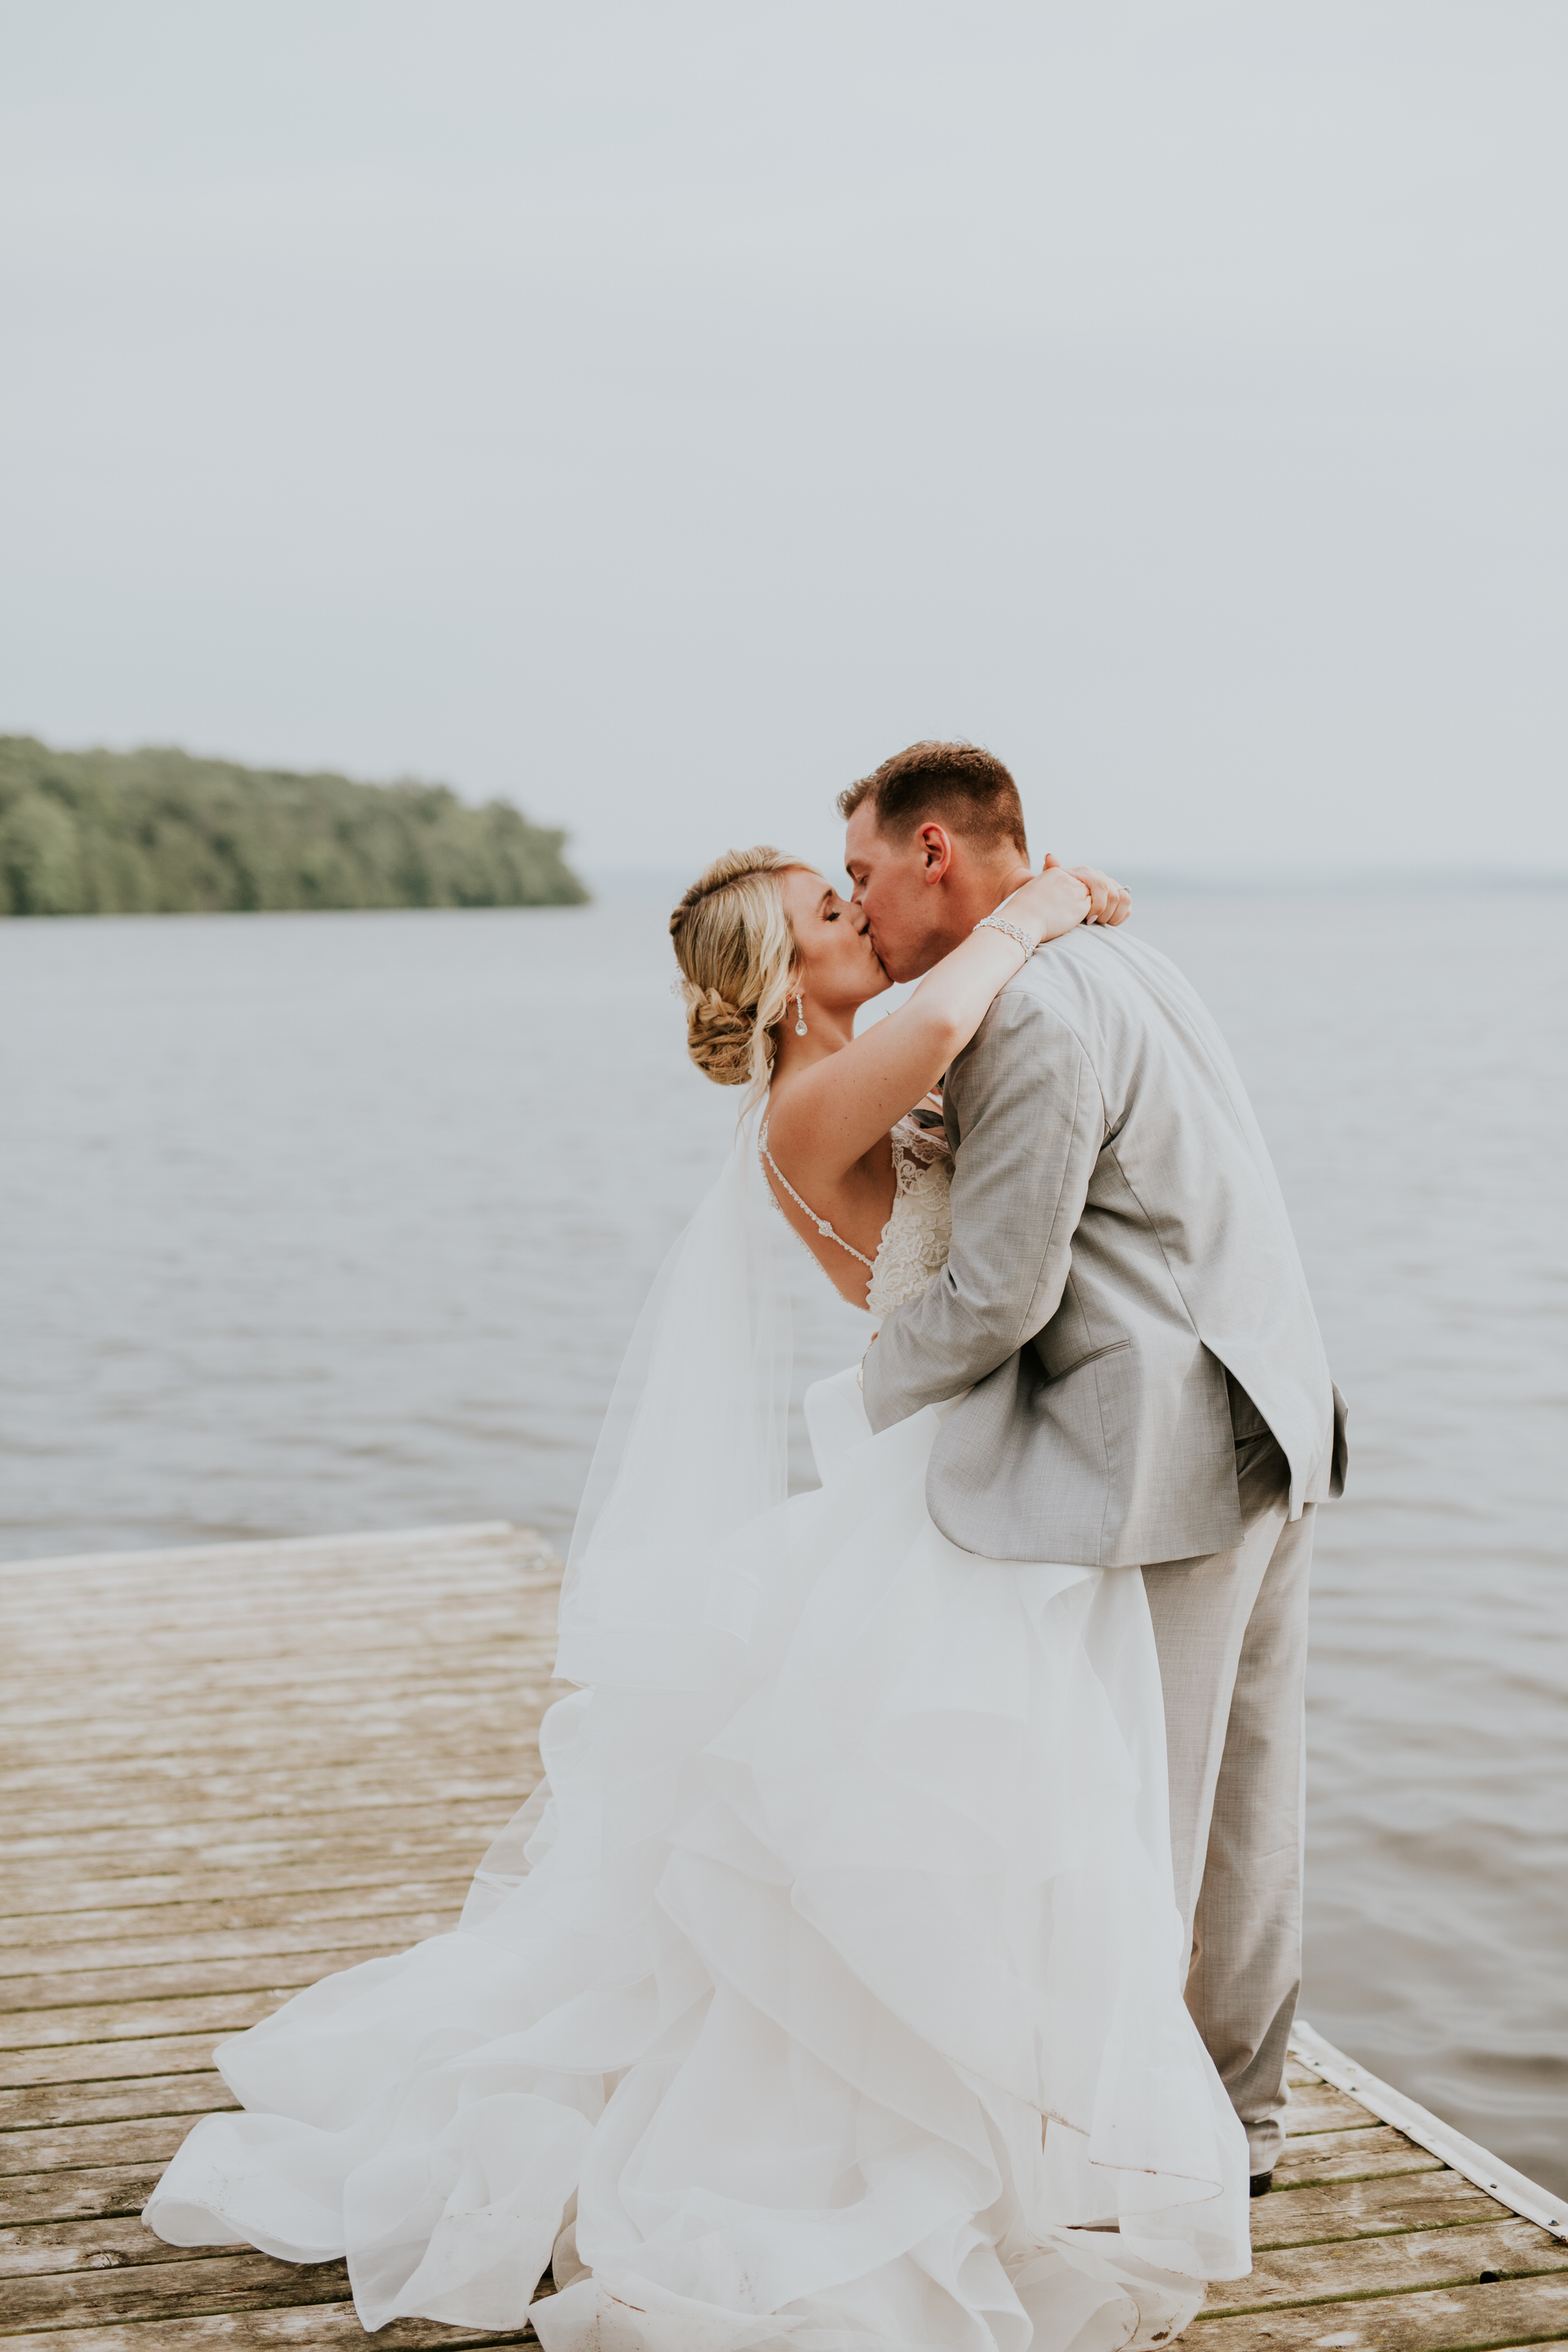 Elmhirst Resort Wedding - kissing on the dock